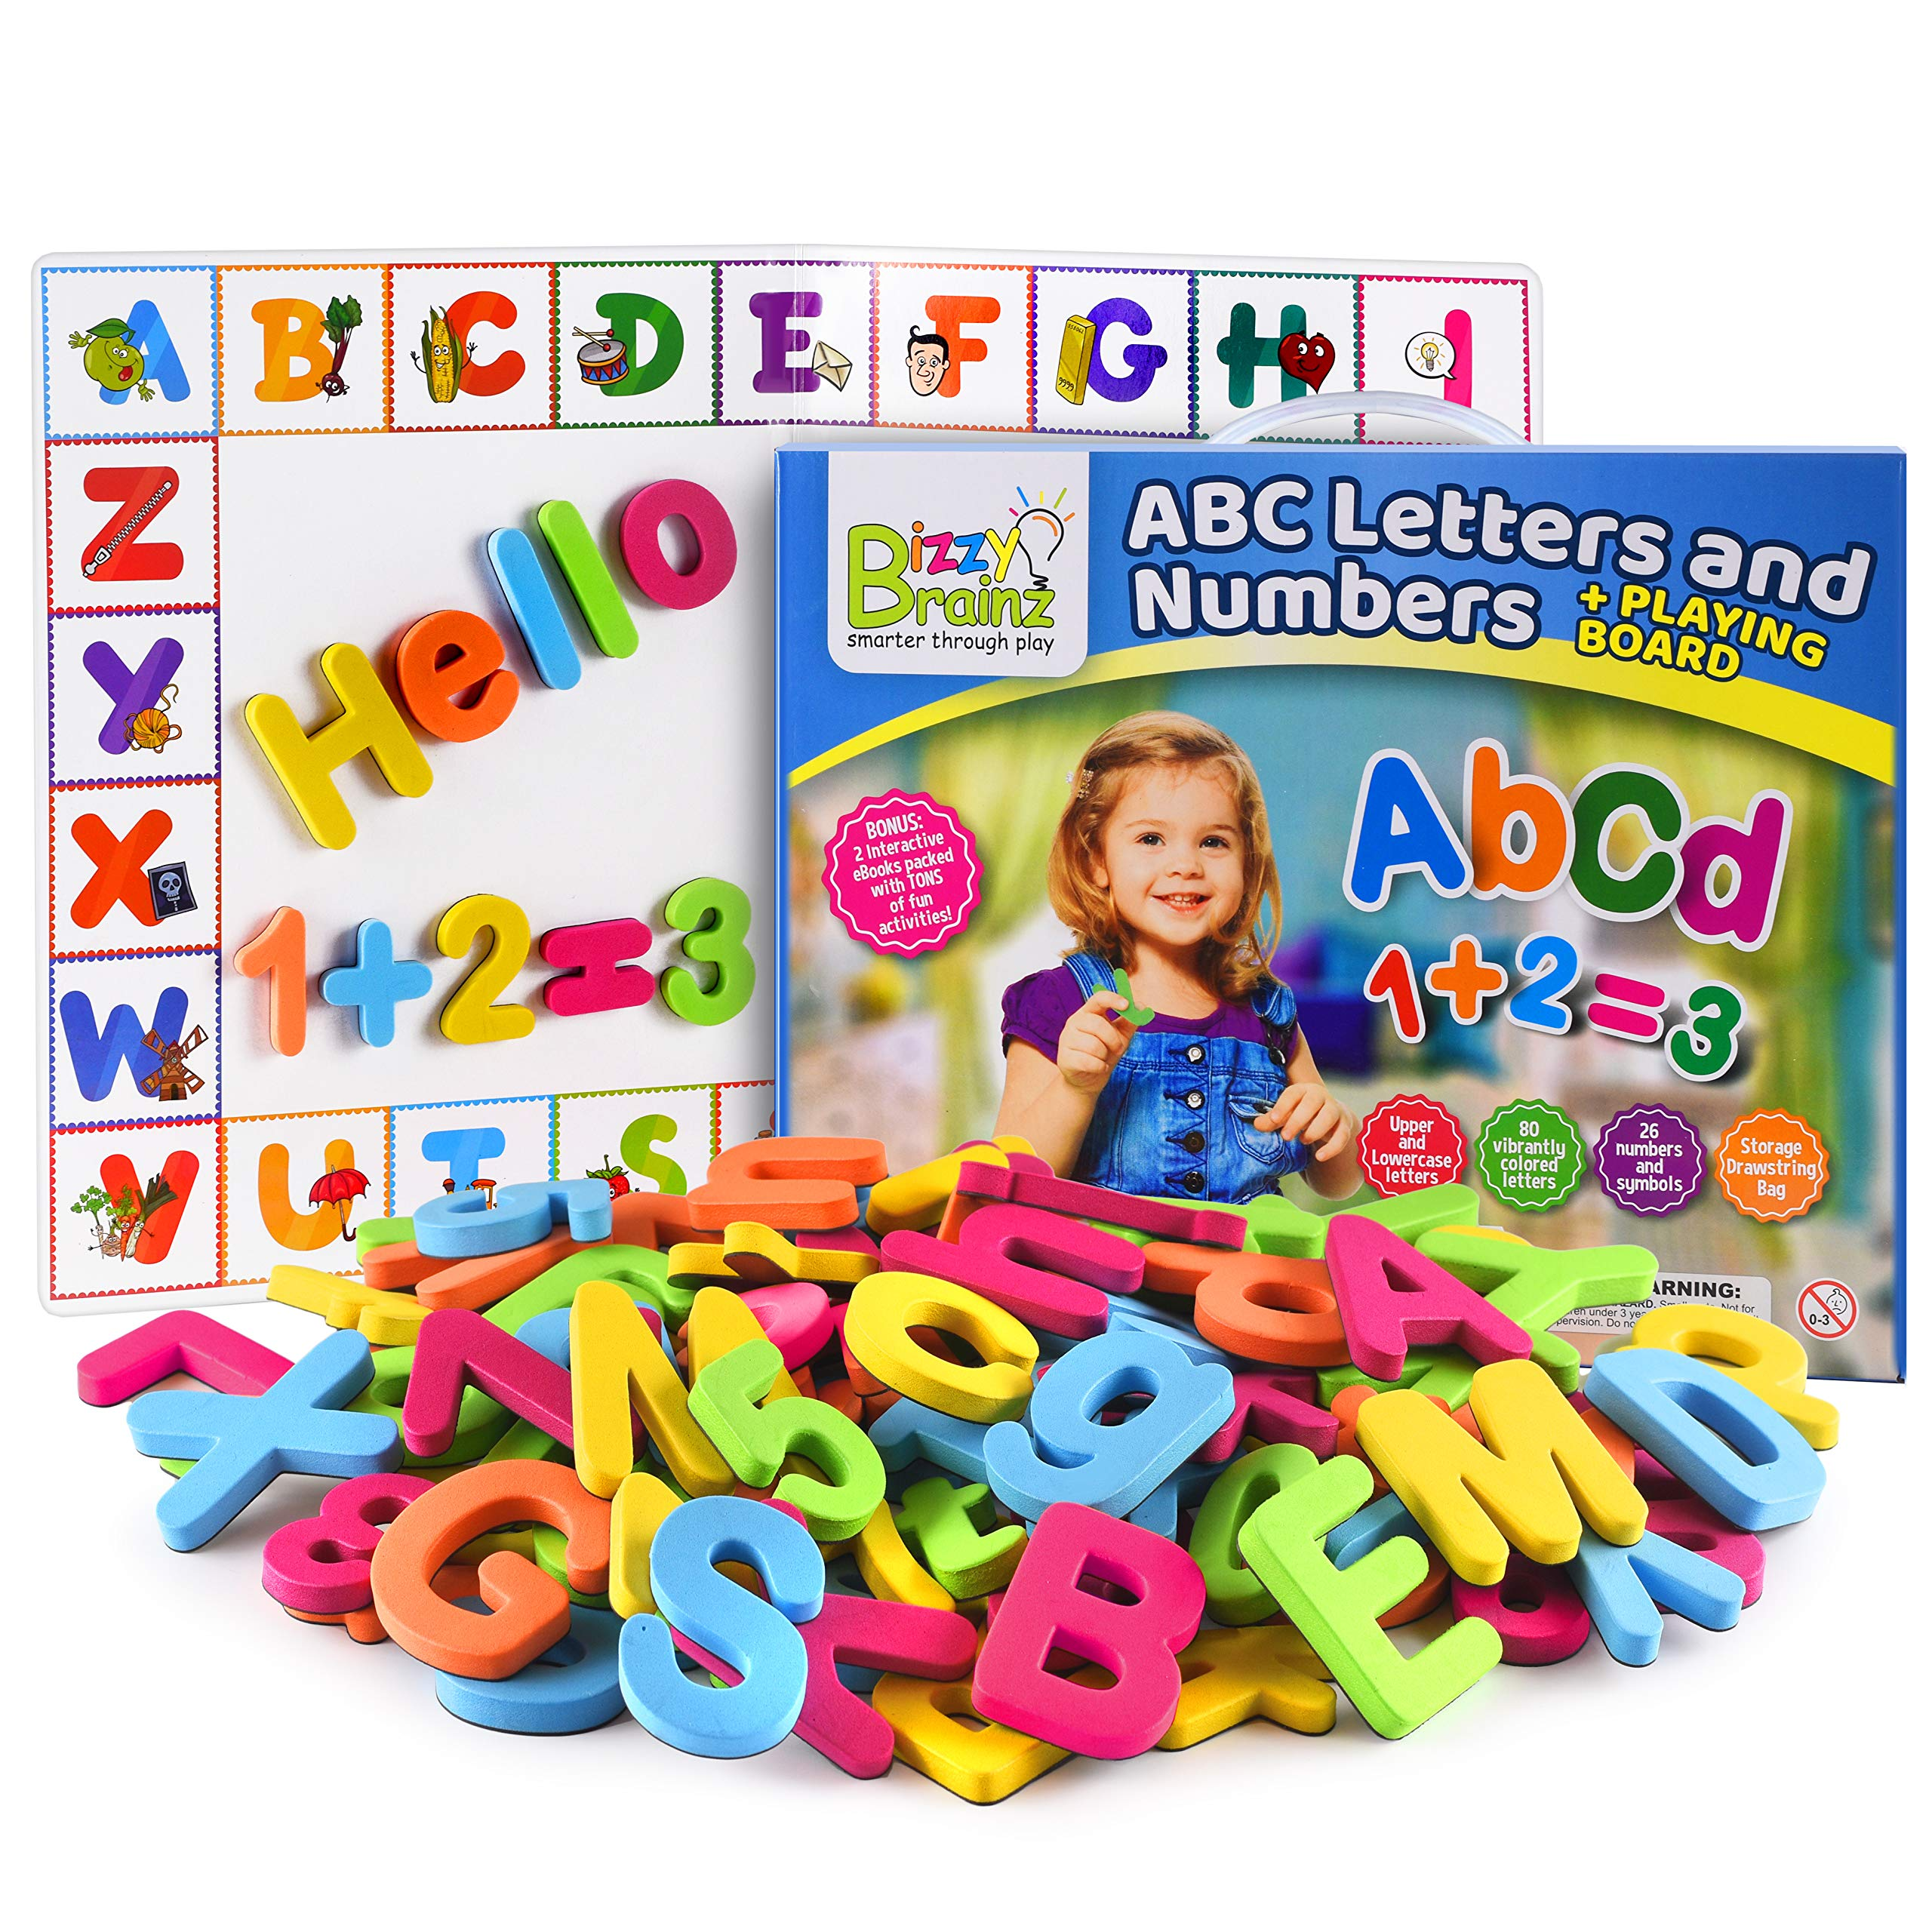 BizzyBrainz ABC Magnets + Magnetic Board / Magnetic Letters and Numbers for Toddlers Includes eBook with 35+ Learning & Spelling Games / Alphabet Magnets by BizzyBrainz